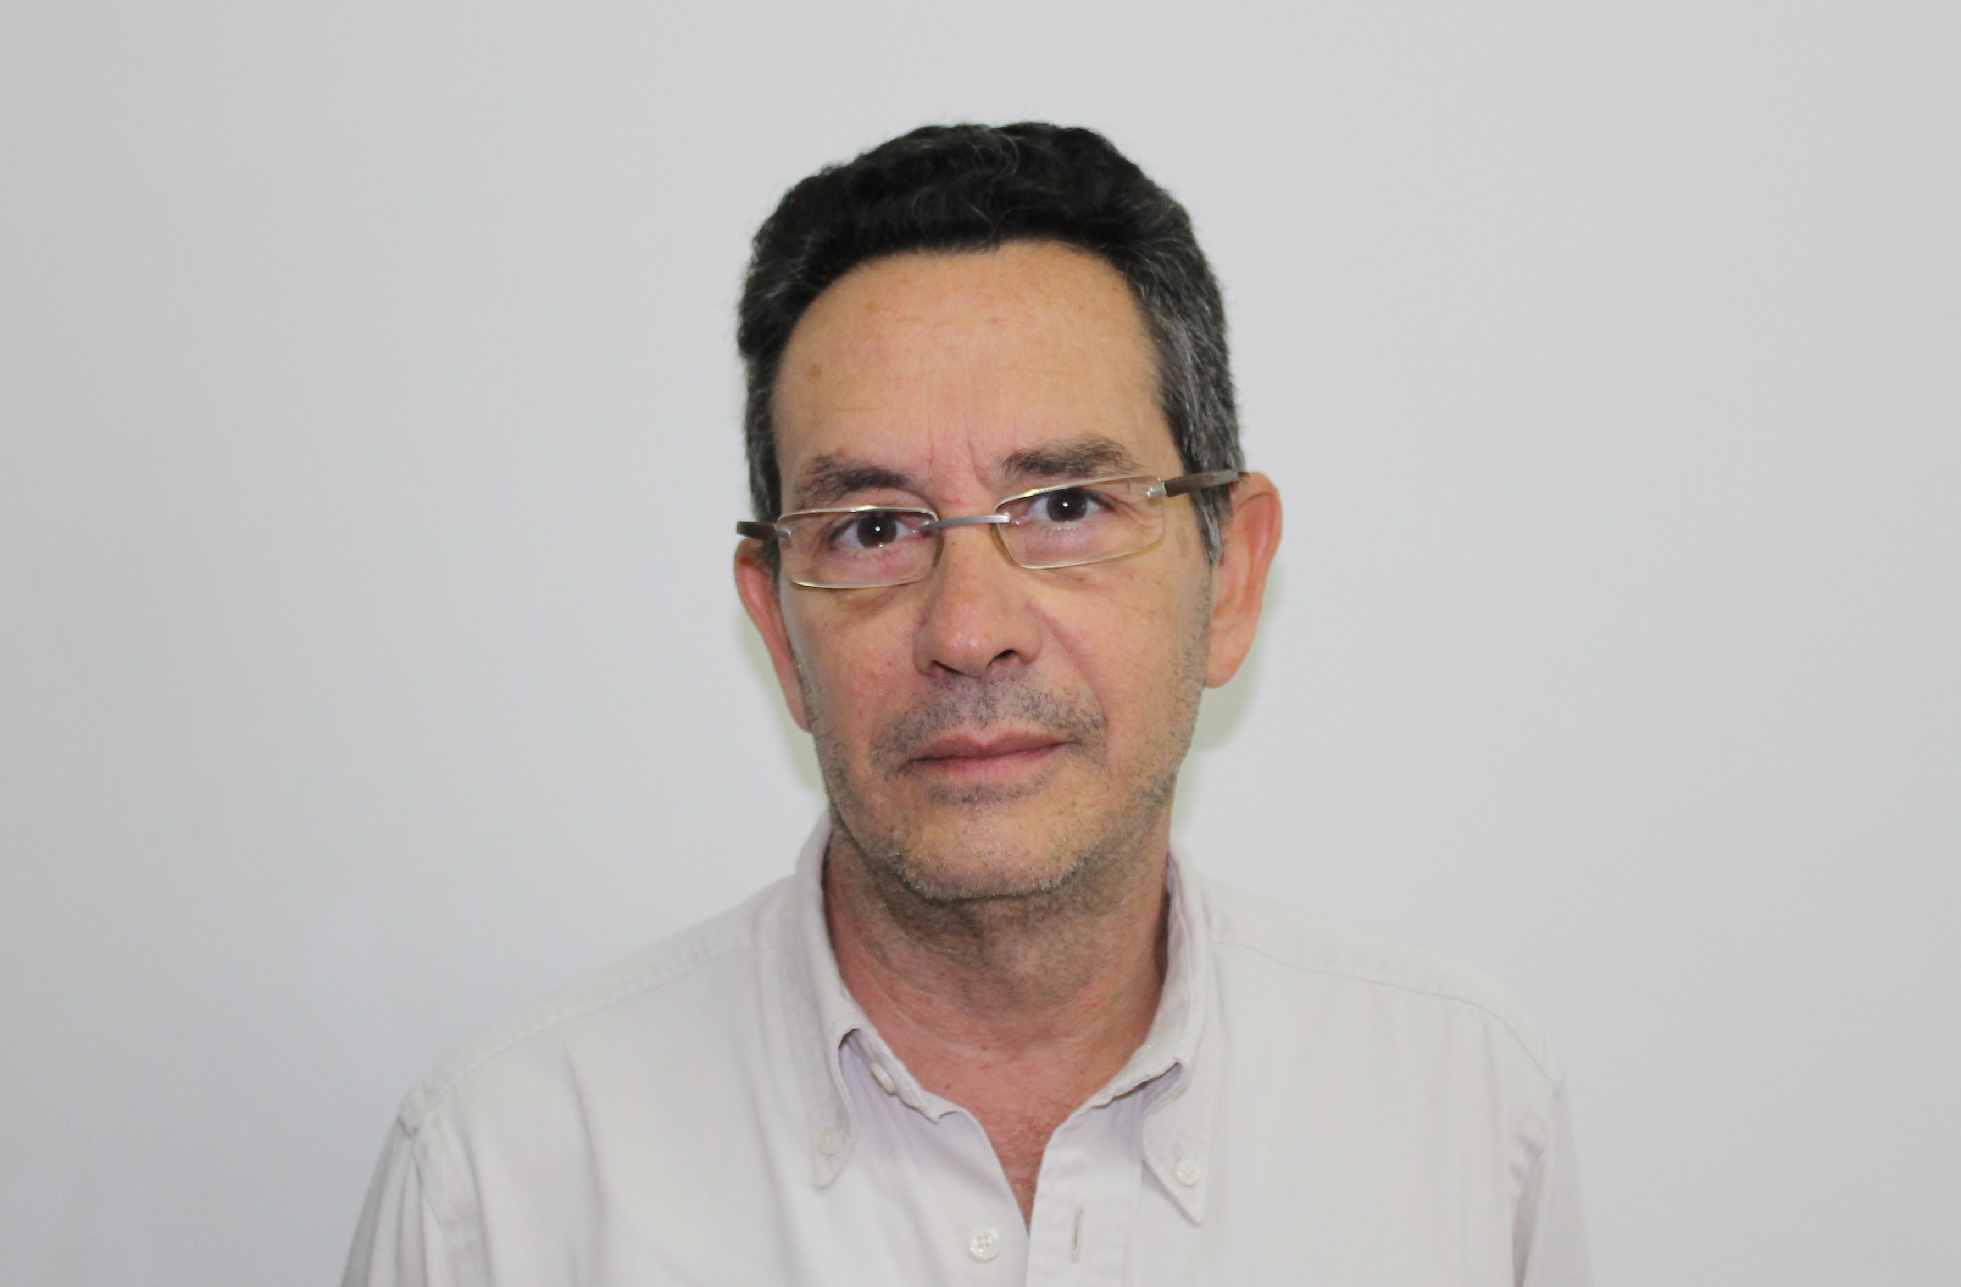 Photo of Jorge Beirão de Almeida Seixas